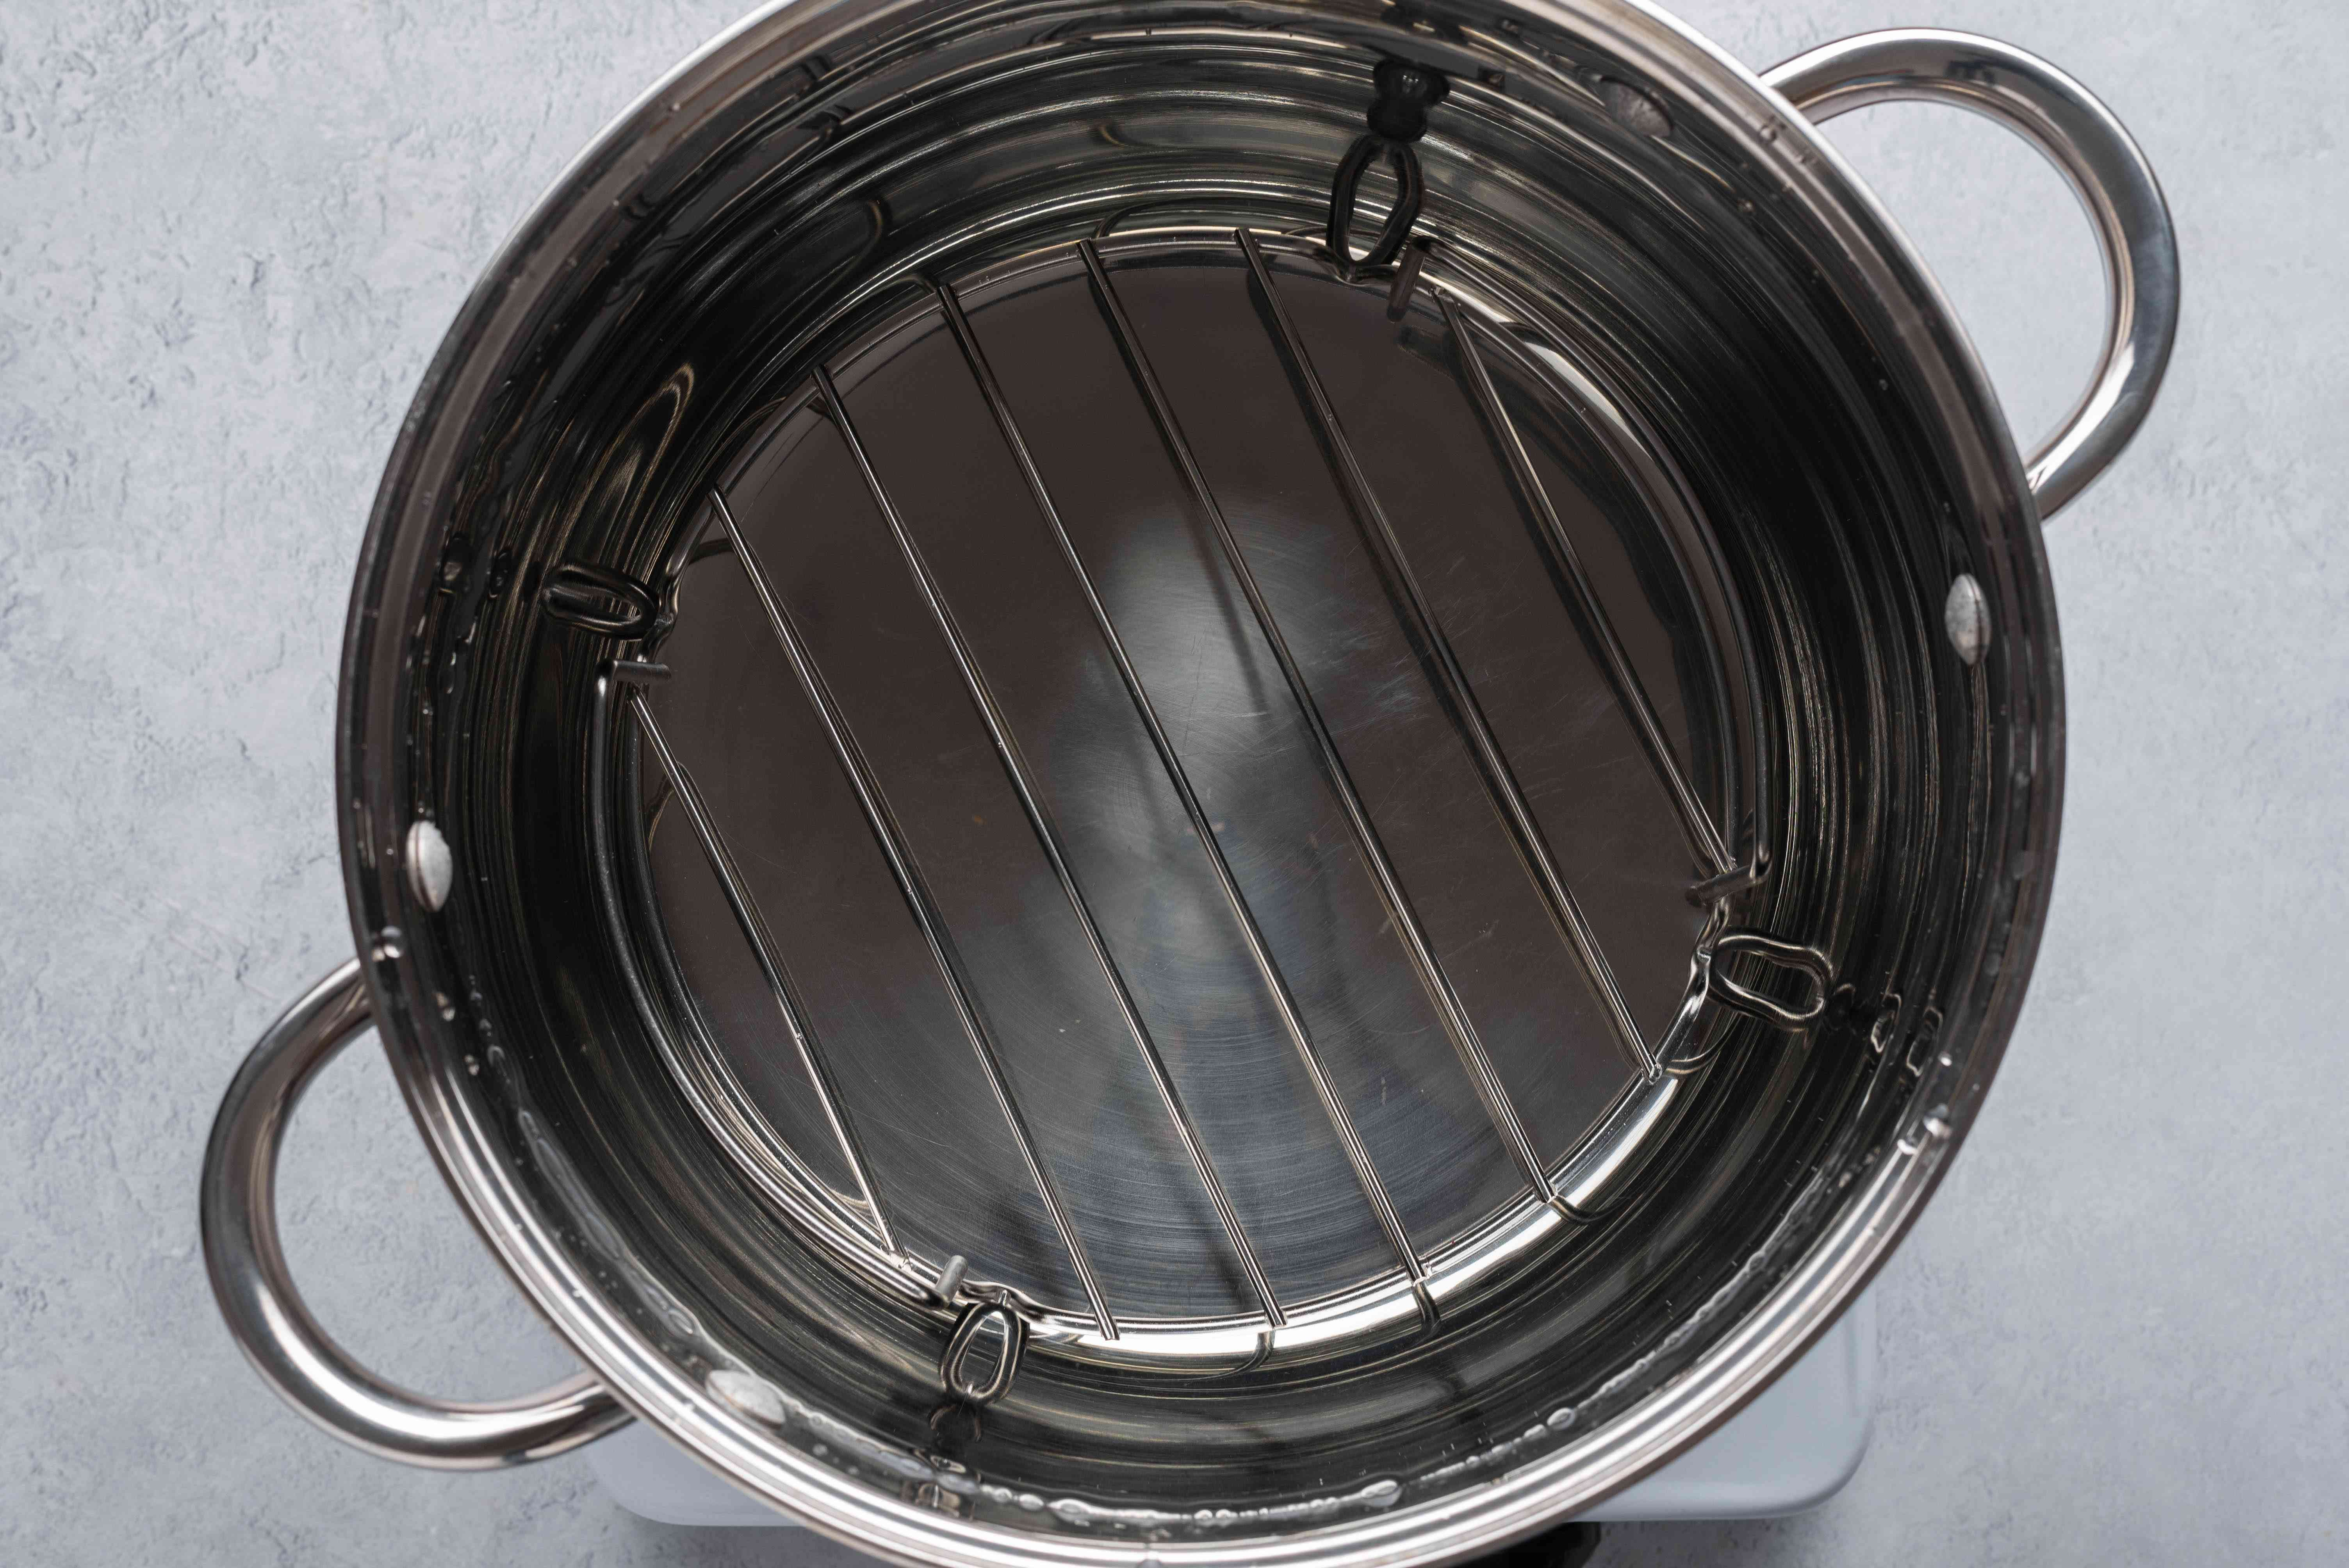 canning pot with water